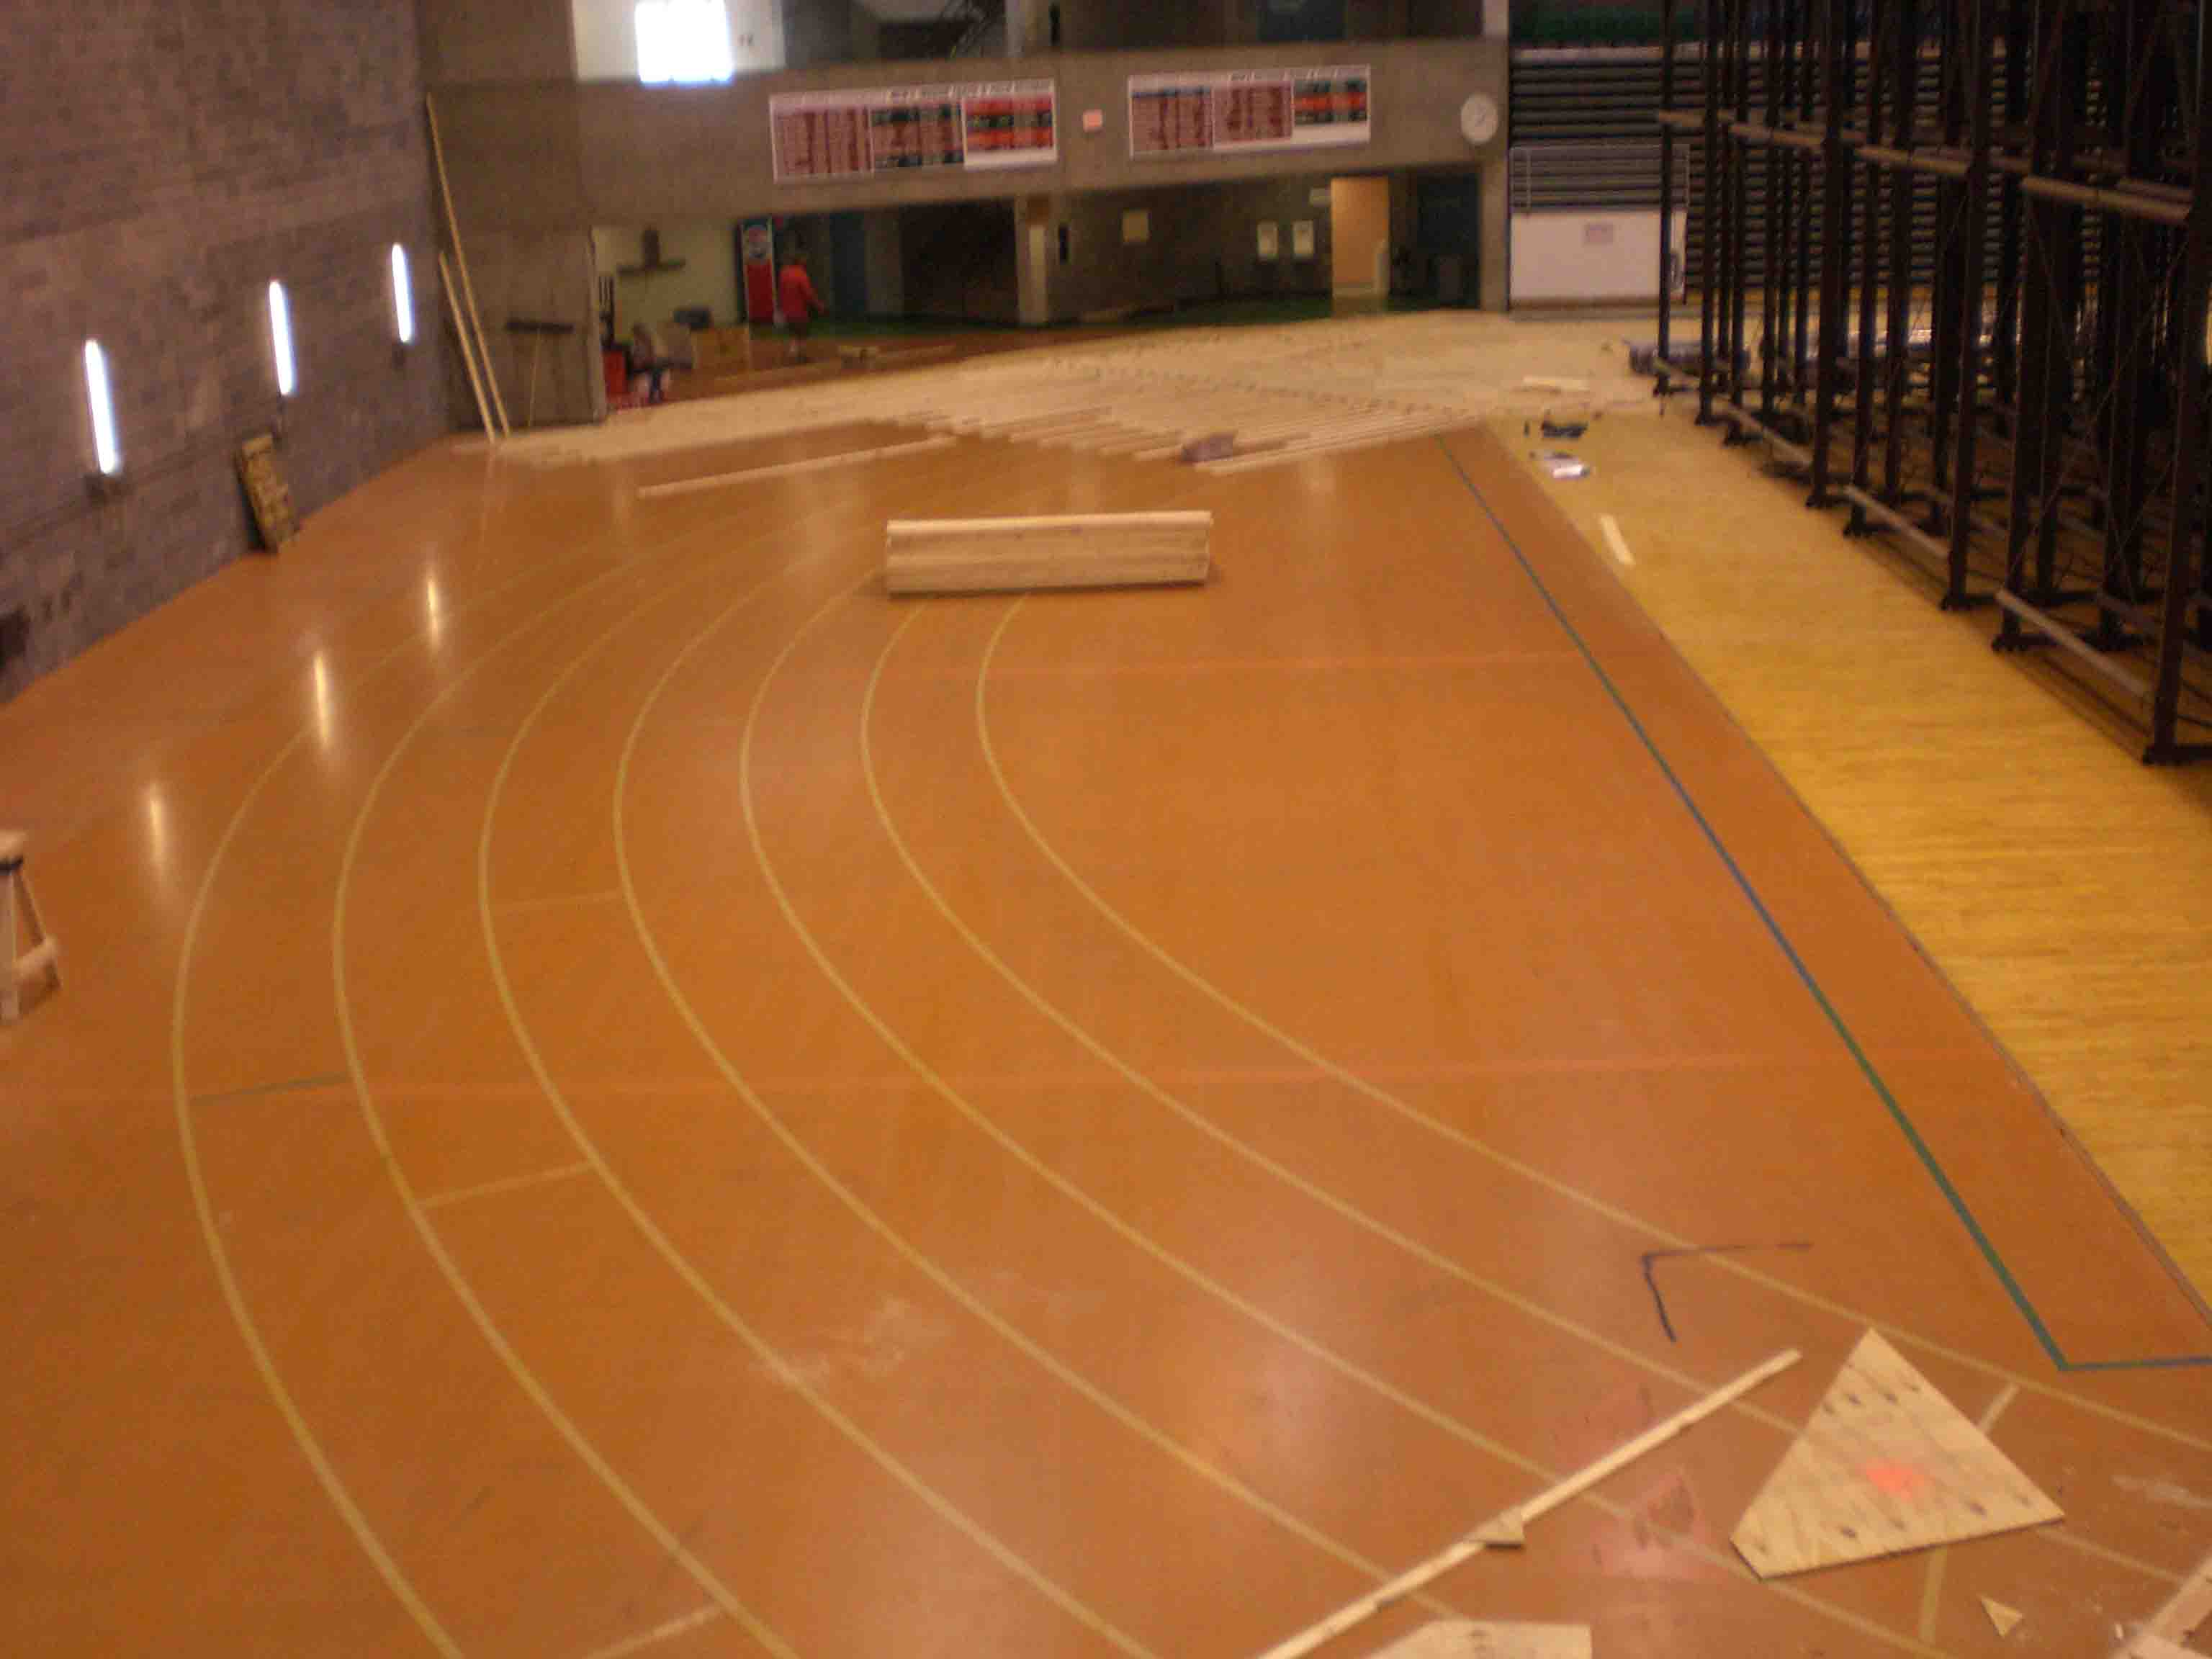 Basketball Court Construction & Indoor Basketball Court Floor ...